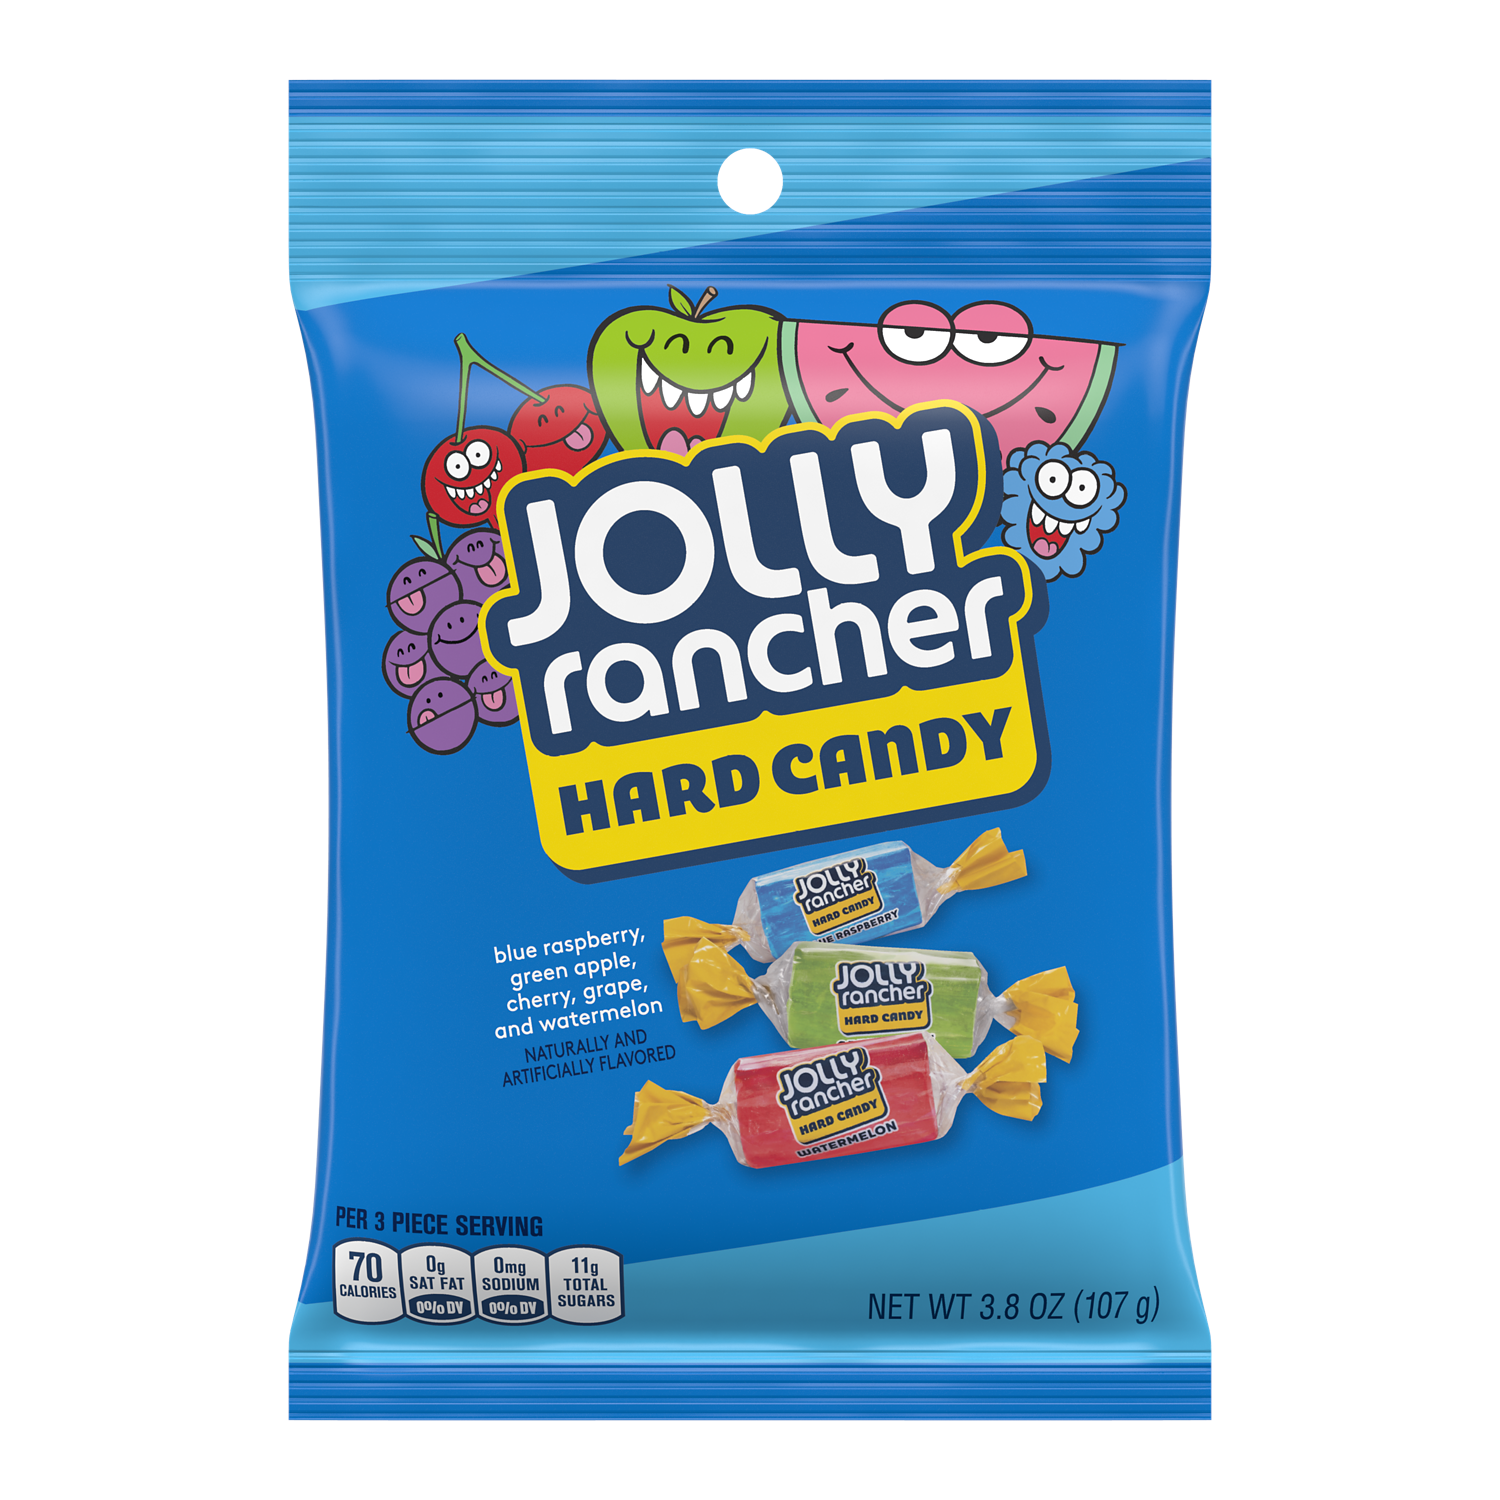 JOLLY RANCHER Original Flavors Hard Candy, 3.8 oz bag - Front of Package